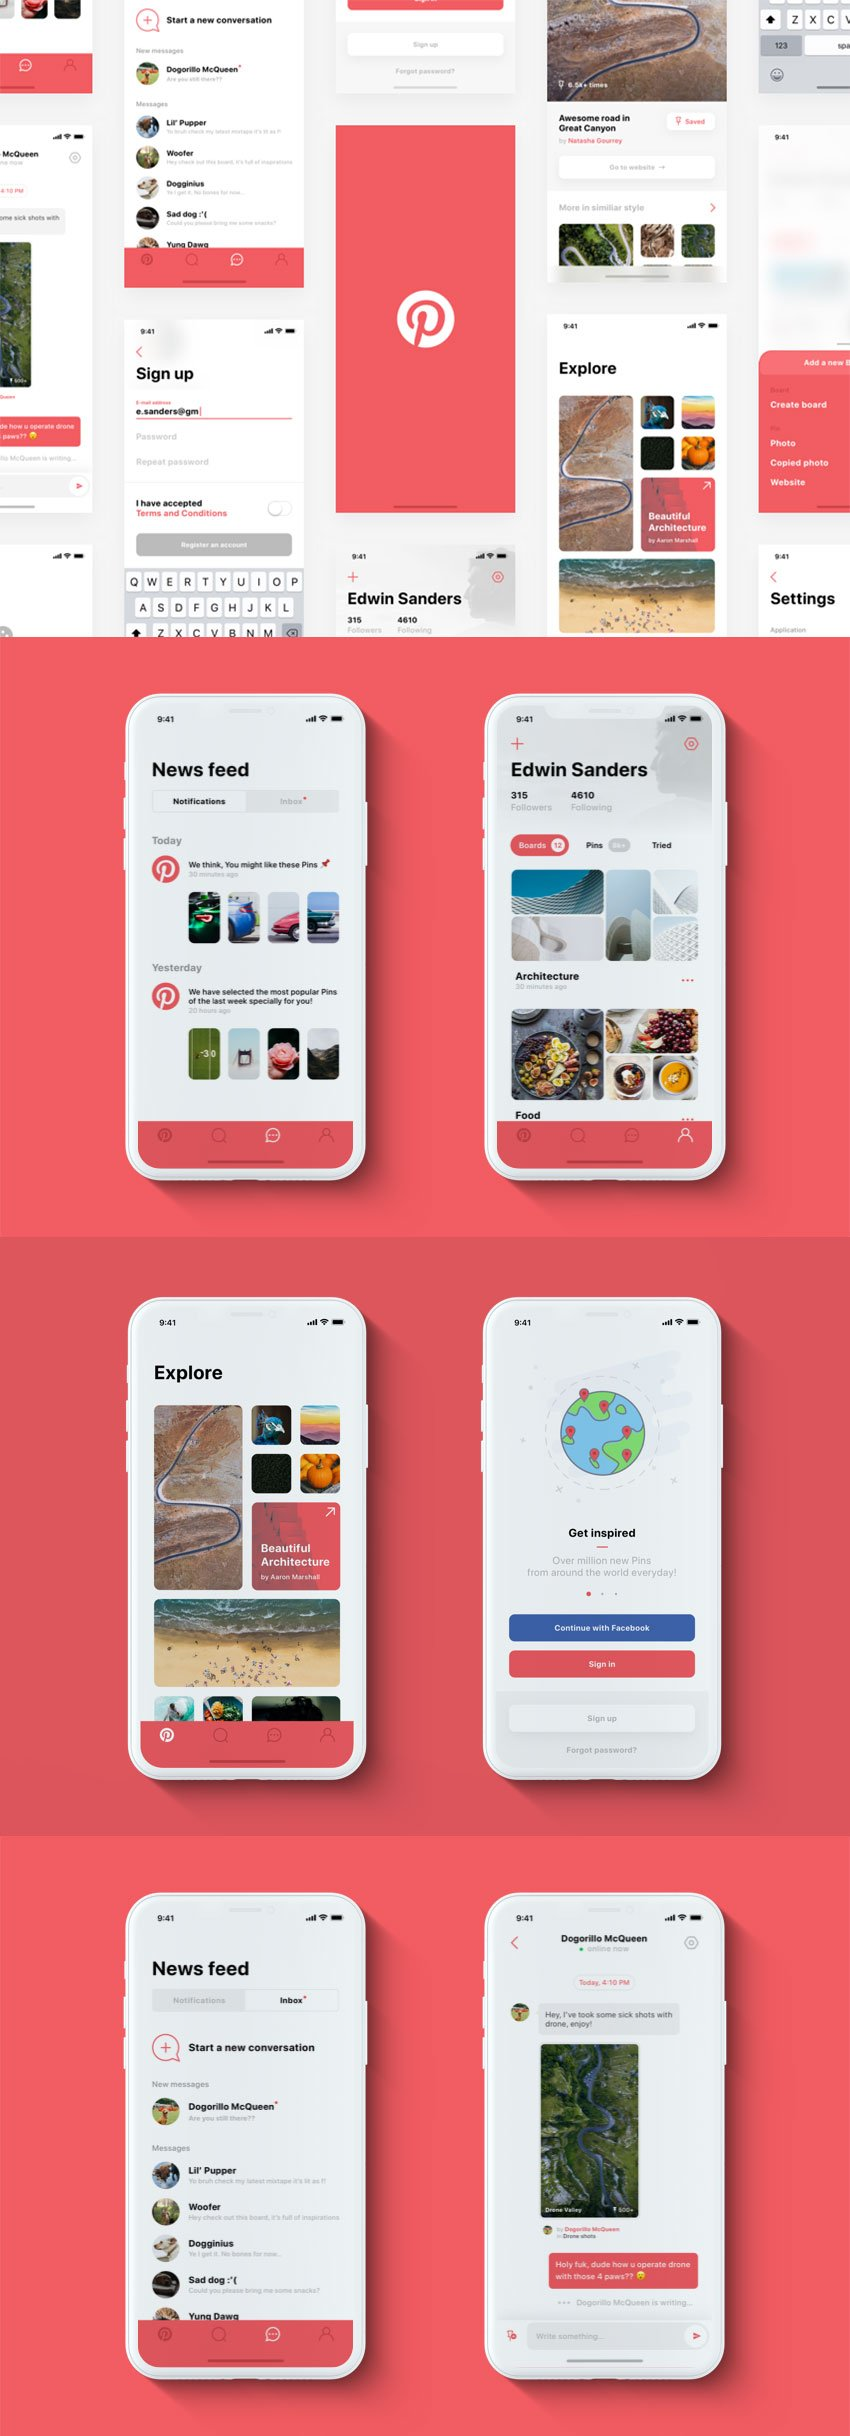 Is Pinterest App Free For Iphone